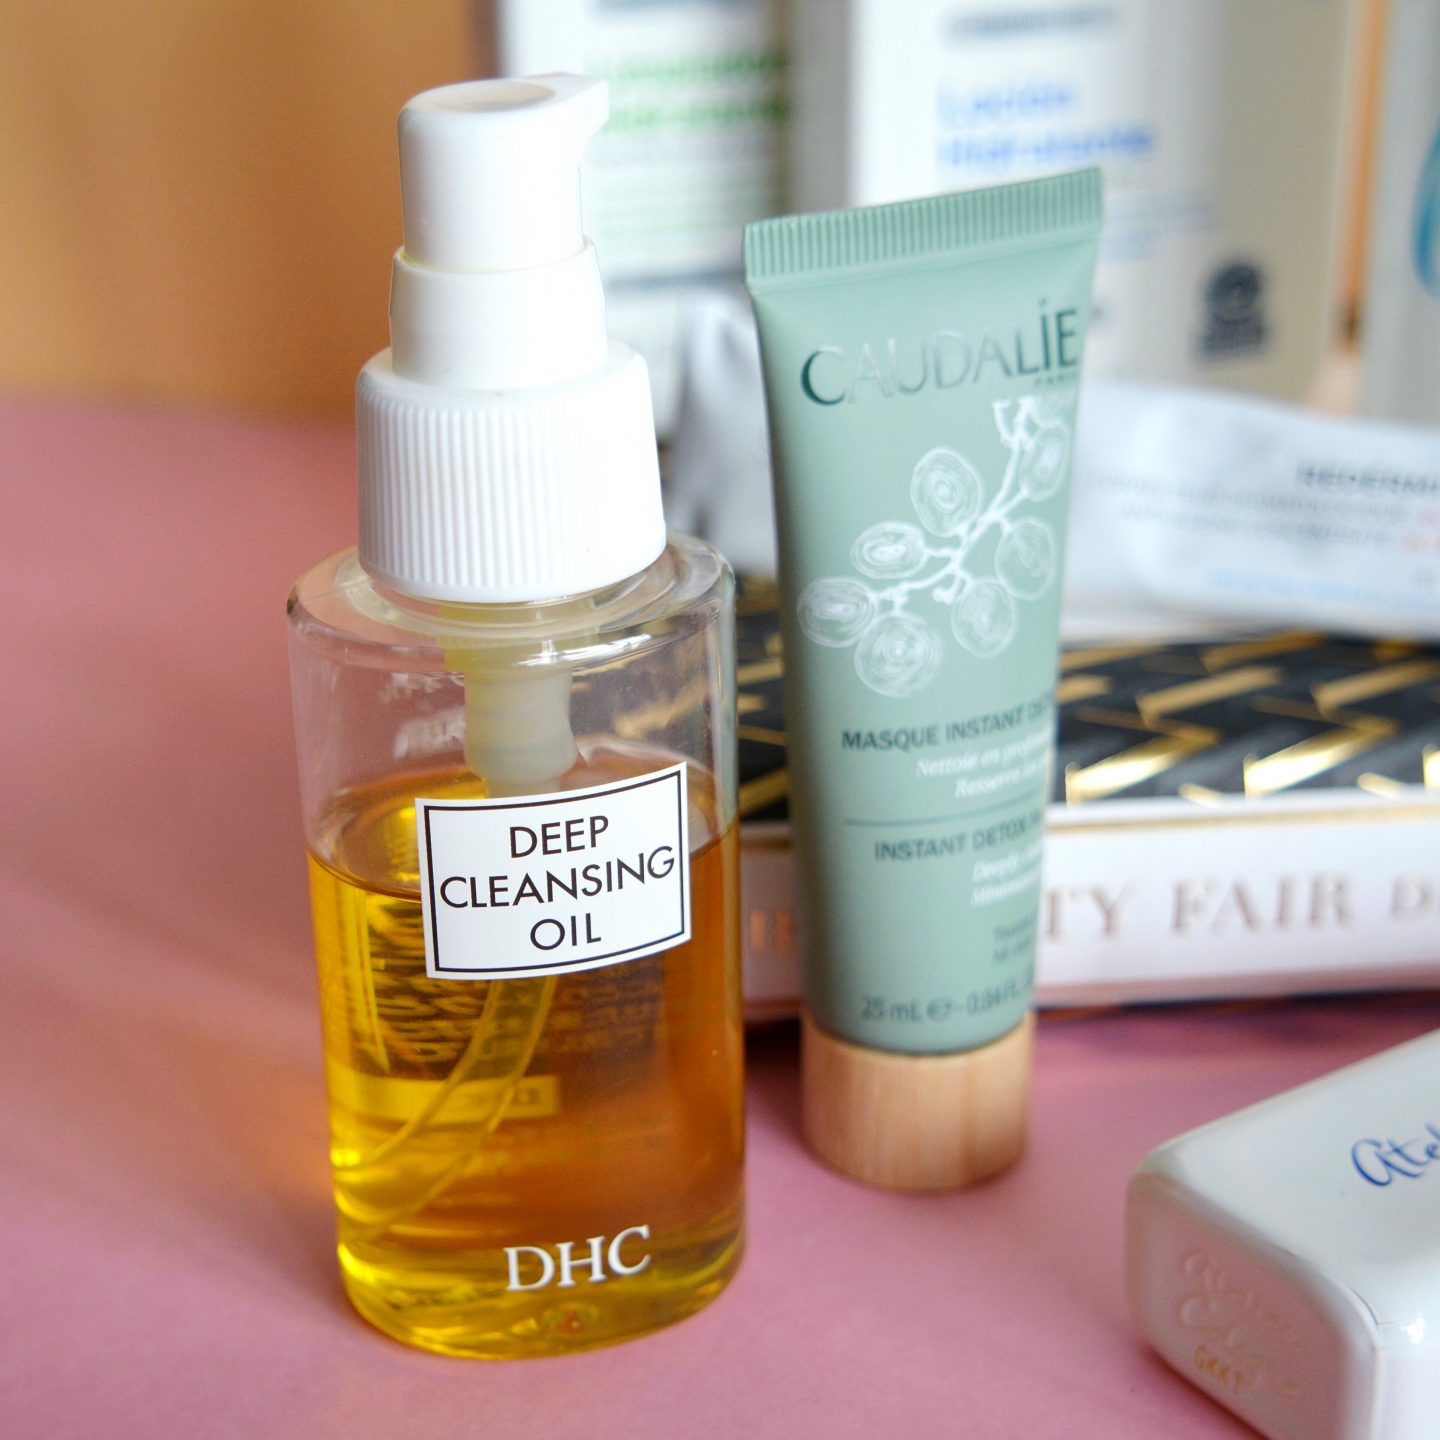 My current skincare routine: DHC Deep Cleansing Oil (rosacea, sensitive skin)